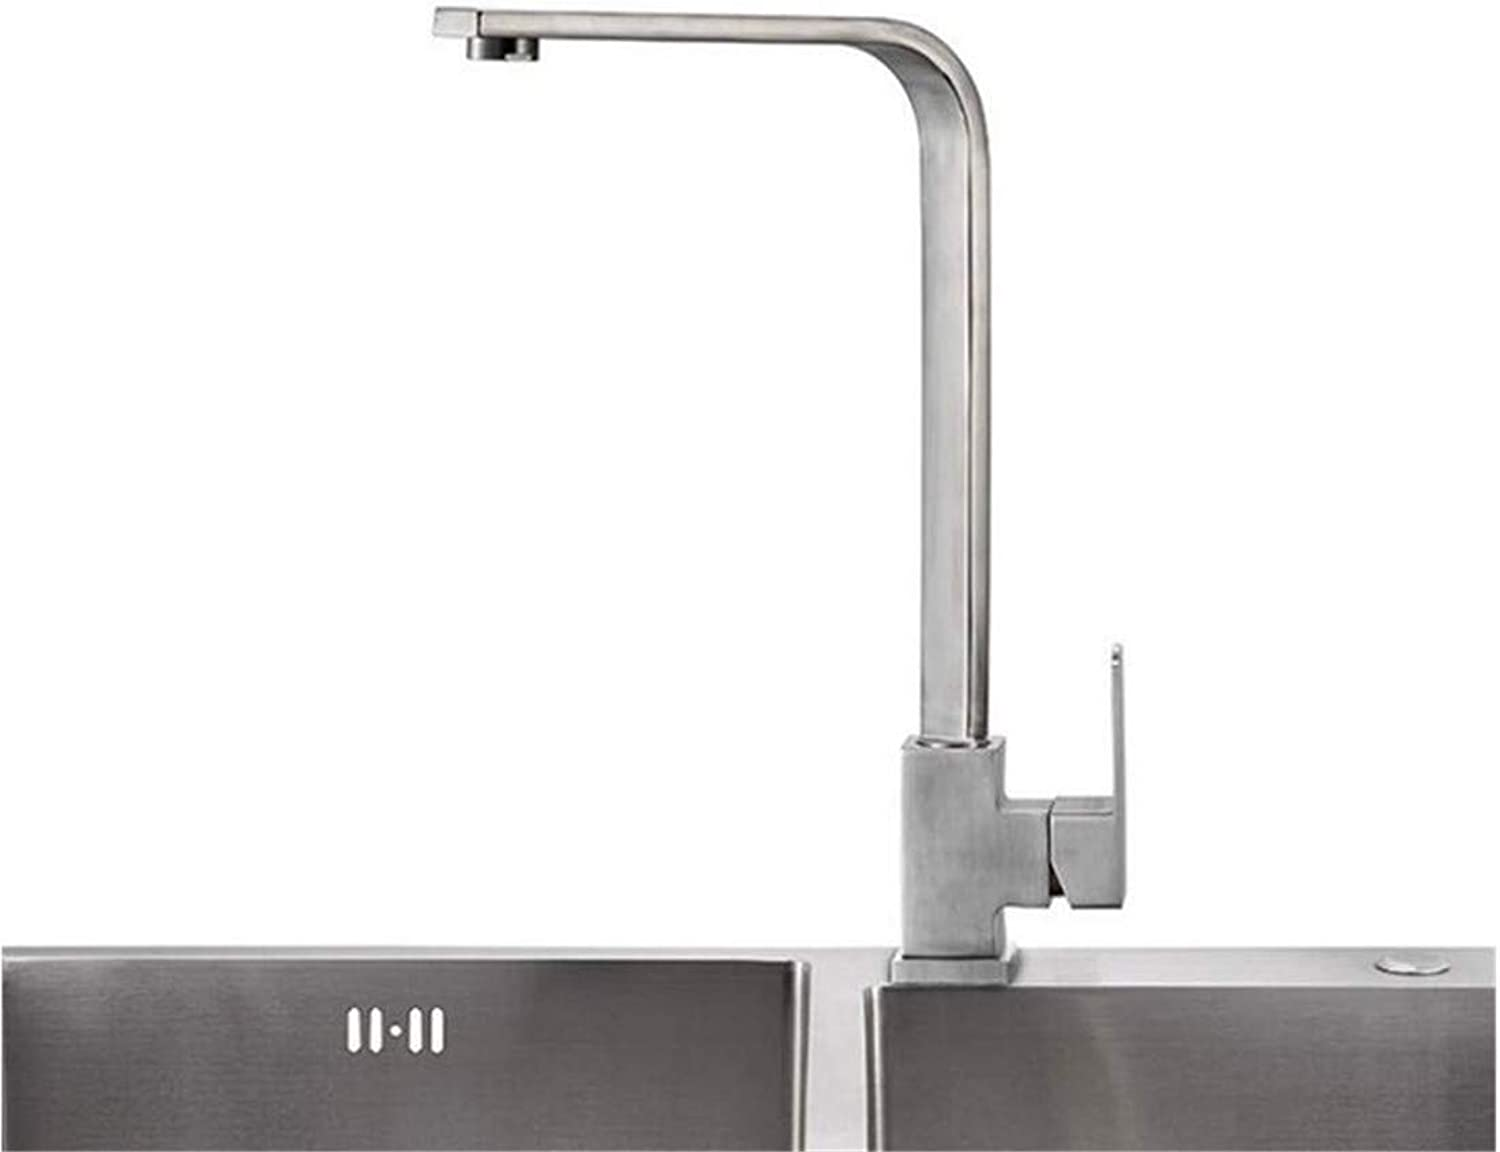 Hot and Cold Vintage Brass Bathroom Kitchen Sink Taps Bathroom Taps 304 Stainless Steel Sink Faucet Kitchen Faucet